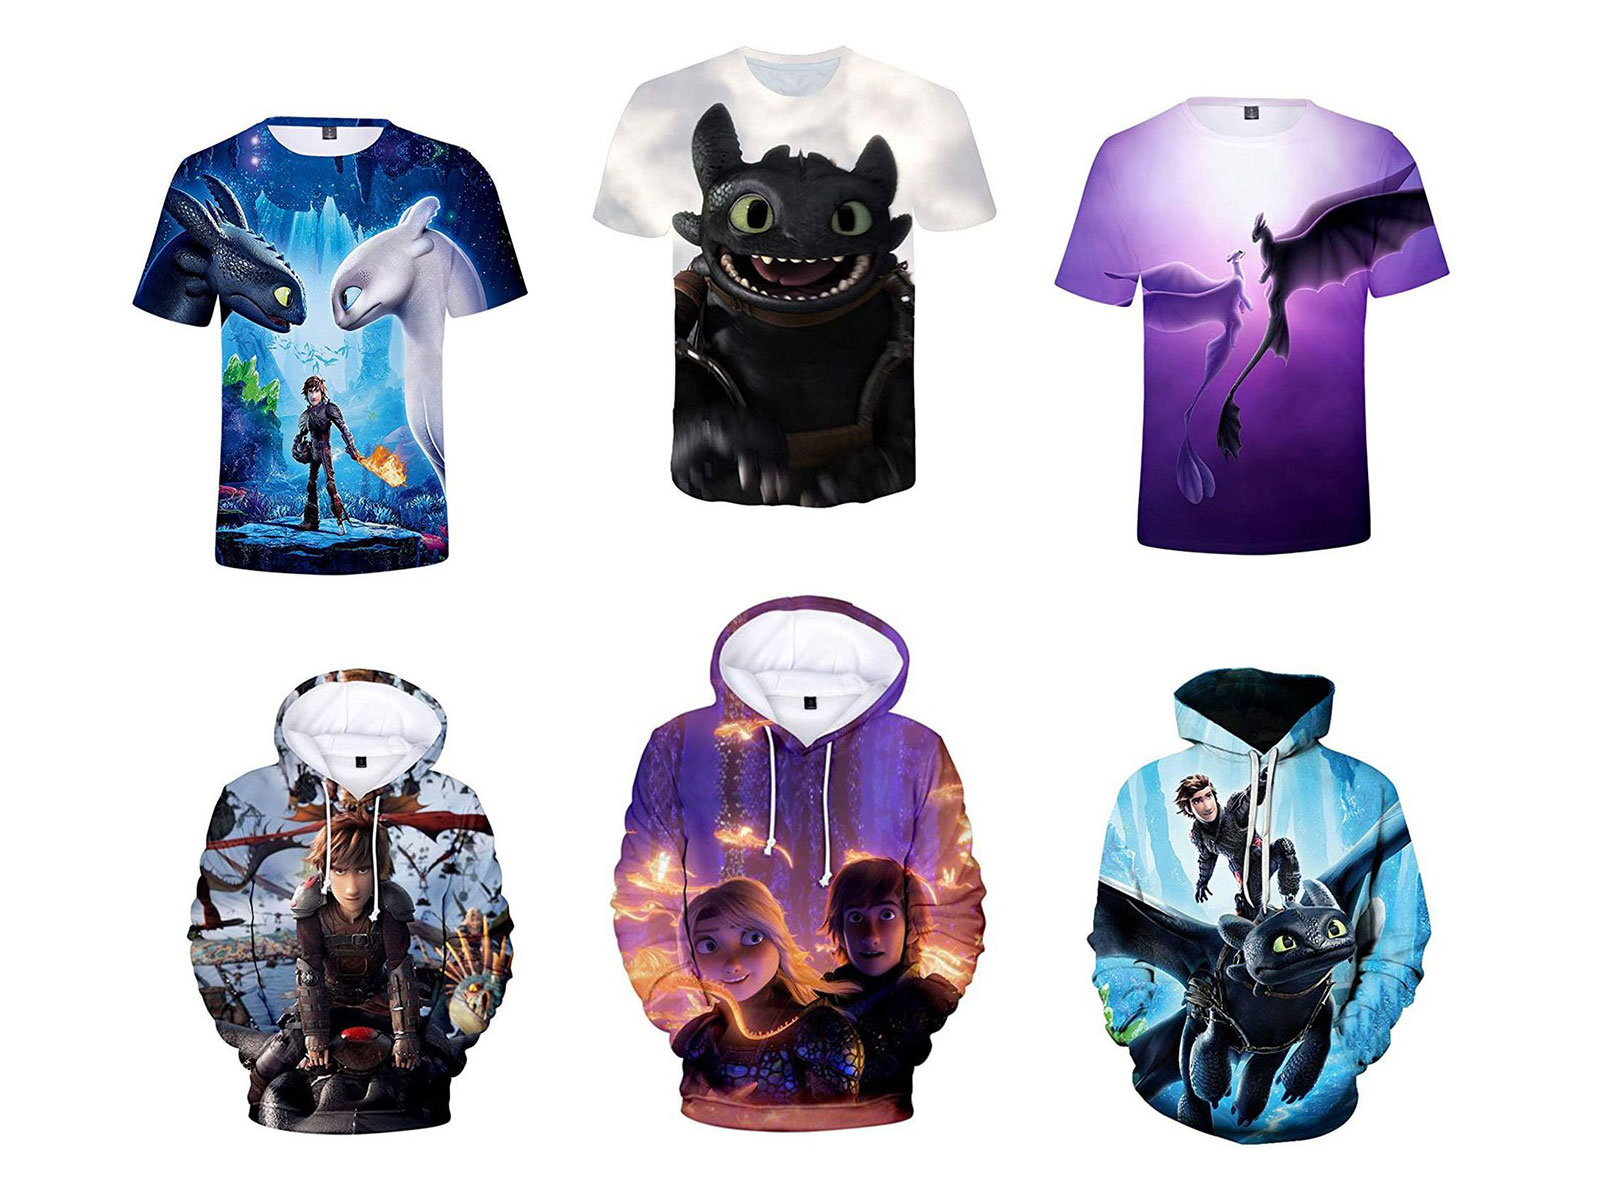 12-How-To-Train-Your-Dragon-3-Full-Movie-Costume-Ideas-2019-F